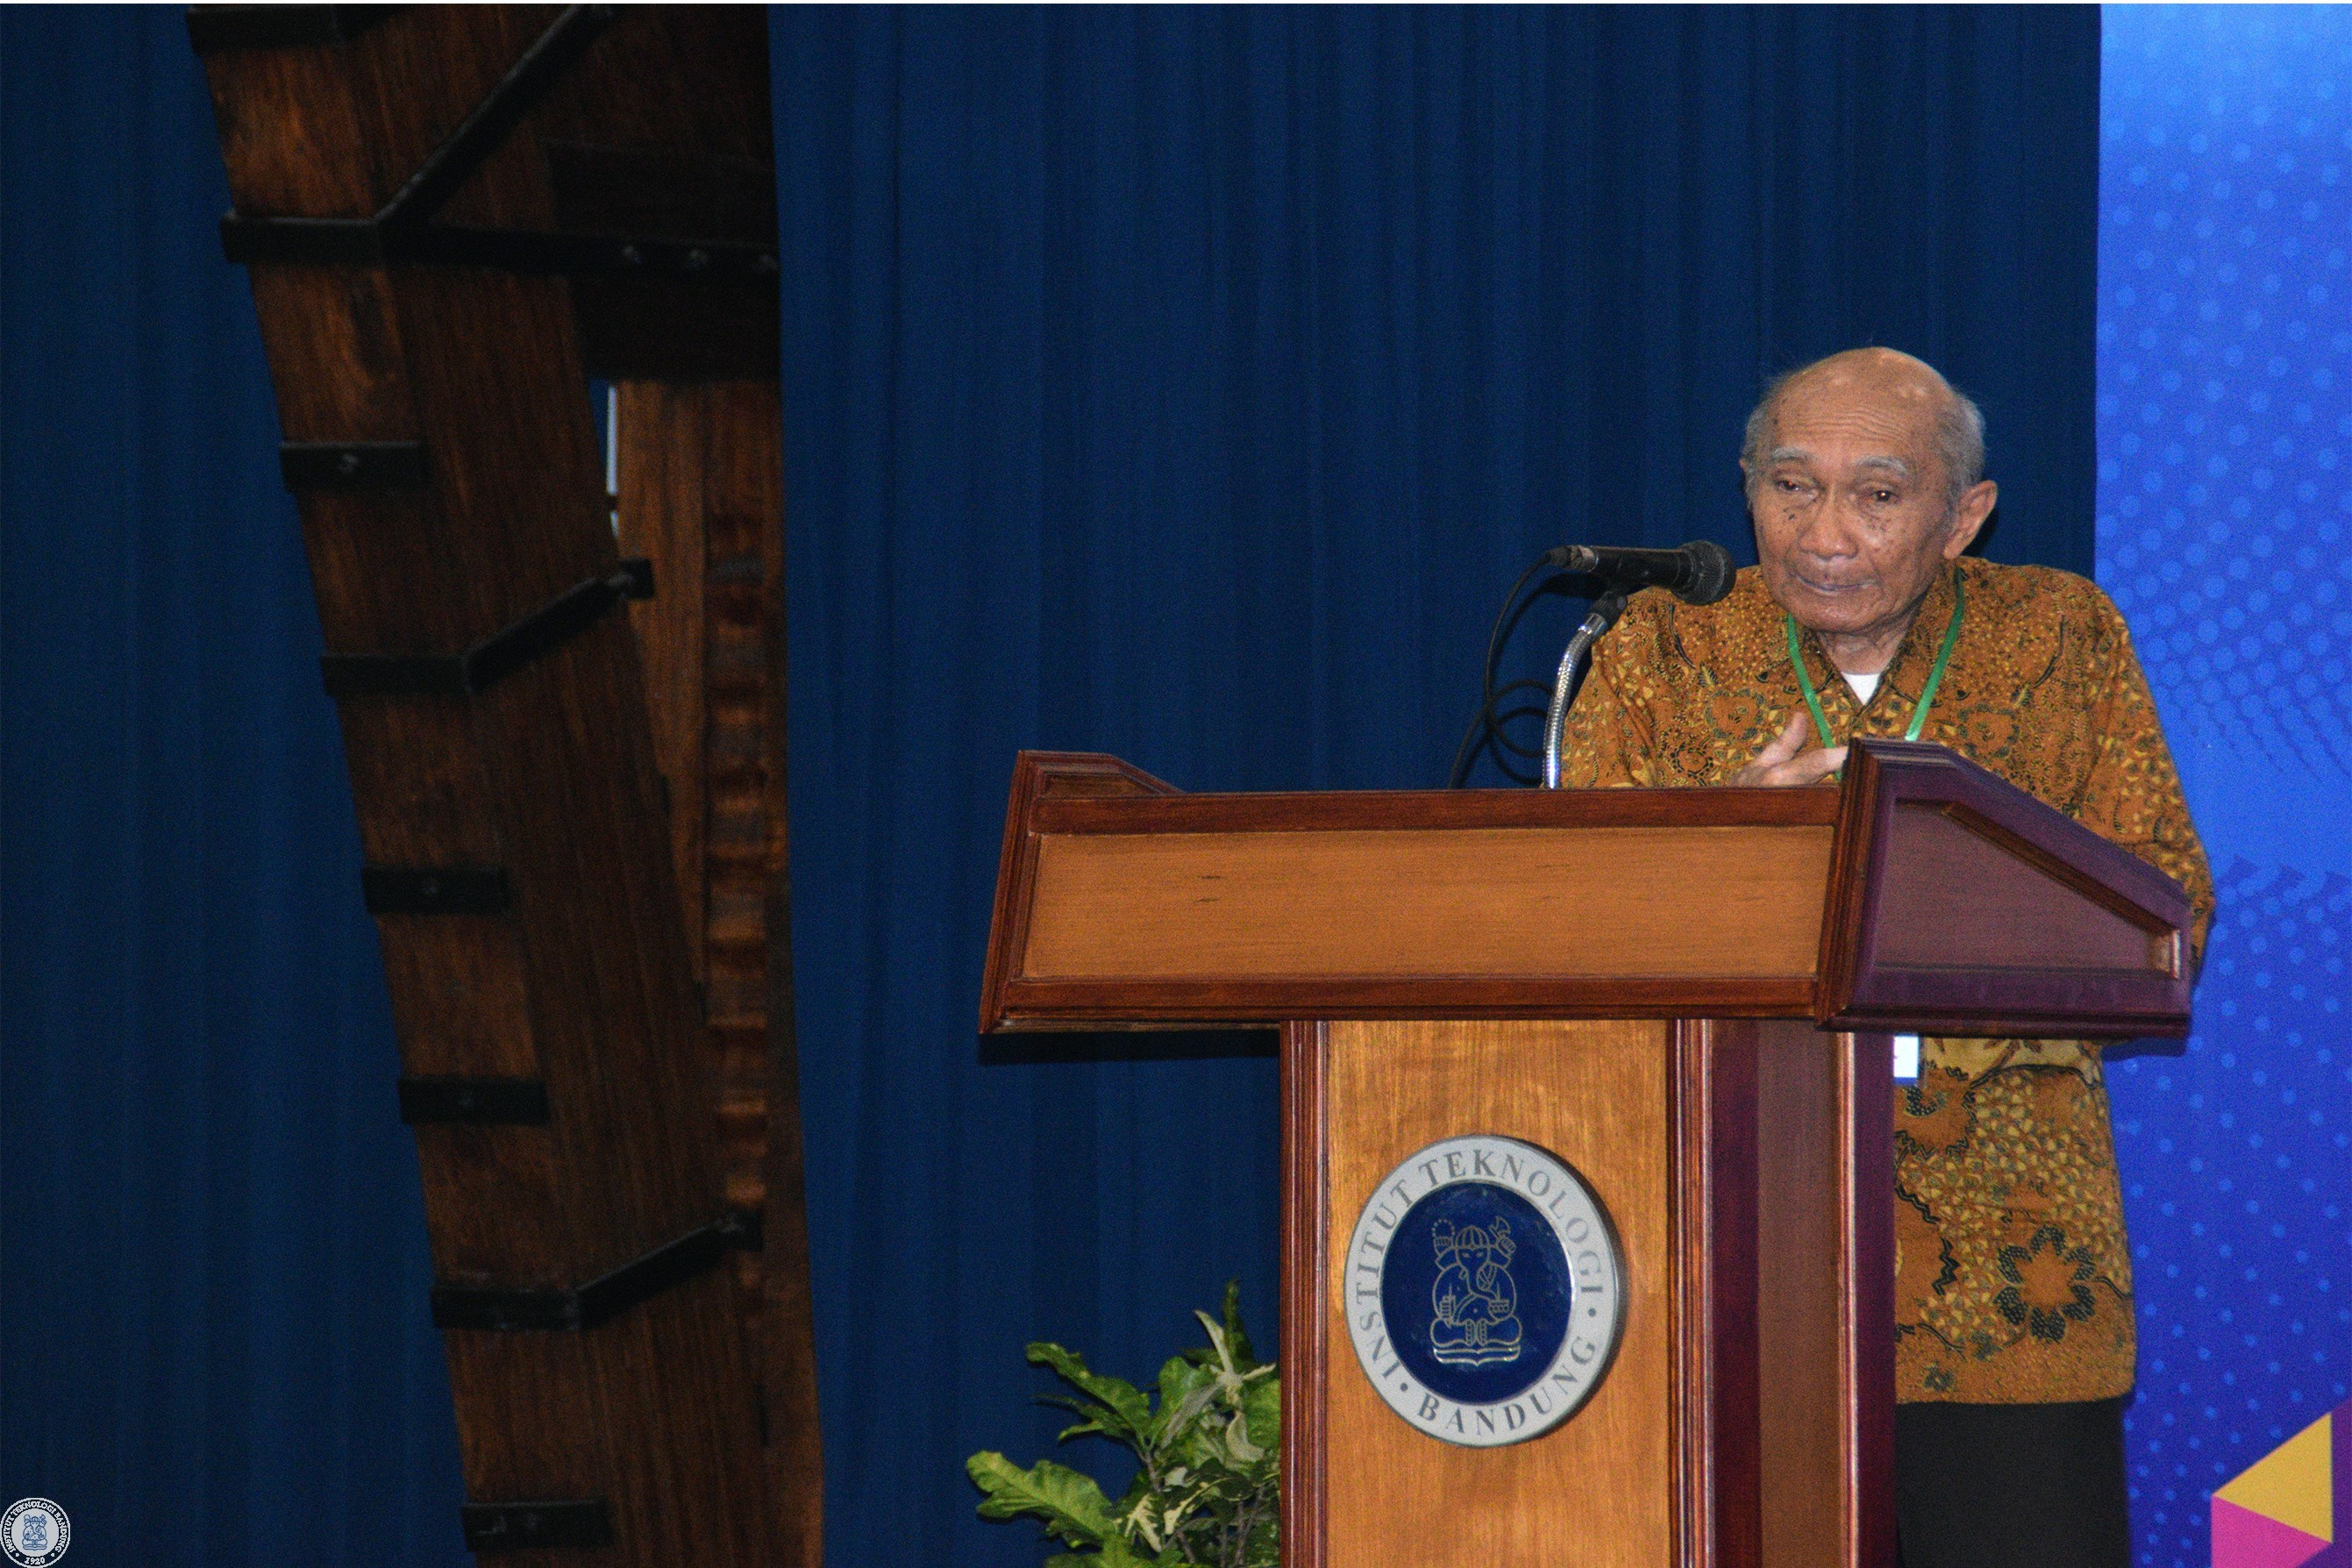 70th-year-of-fmipa-itb-seminar-consistency-in-devotion-to-sciences-and-mathematics-for-nation